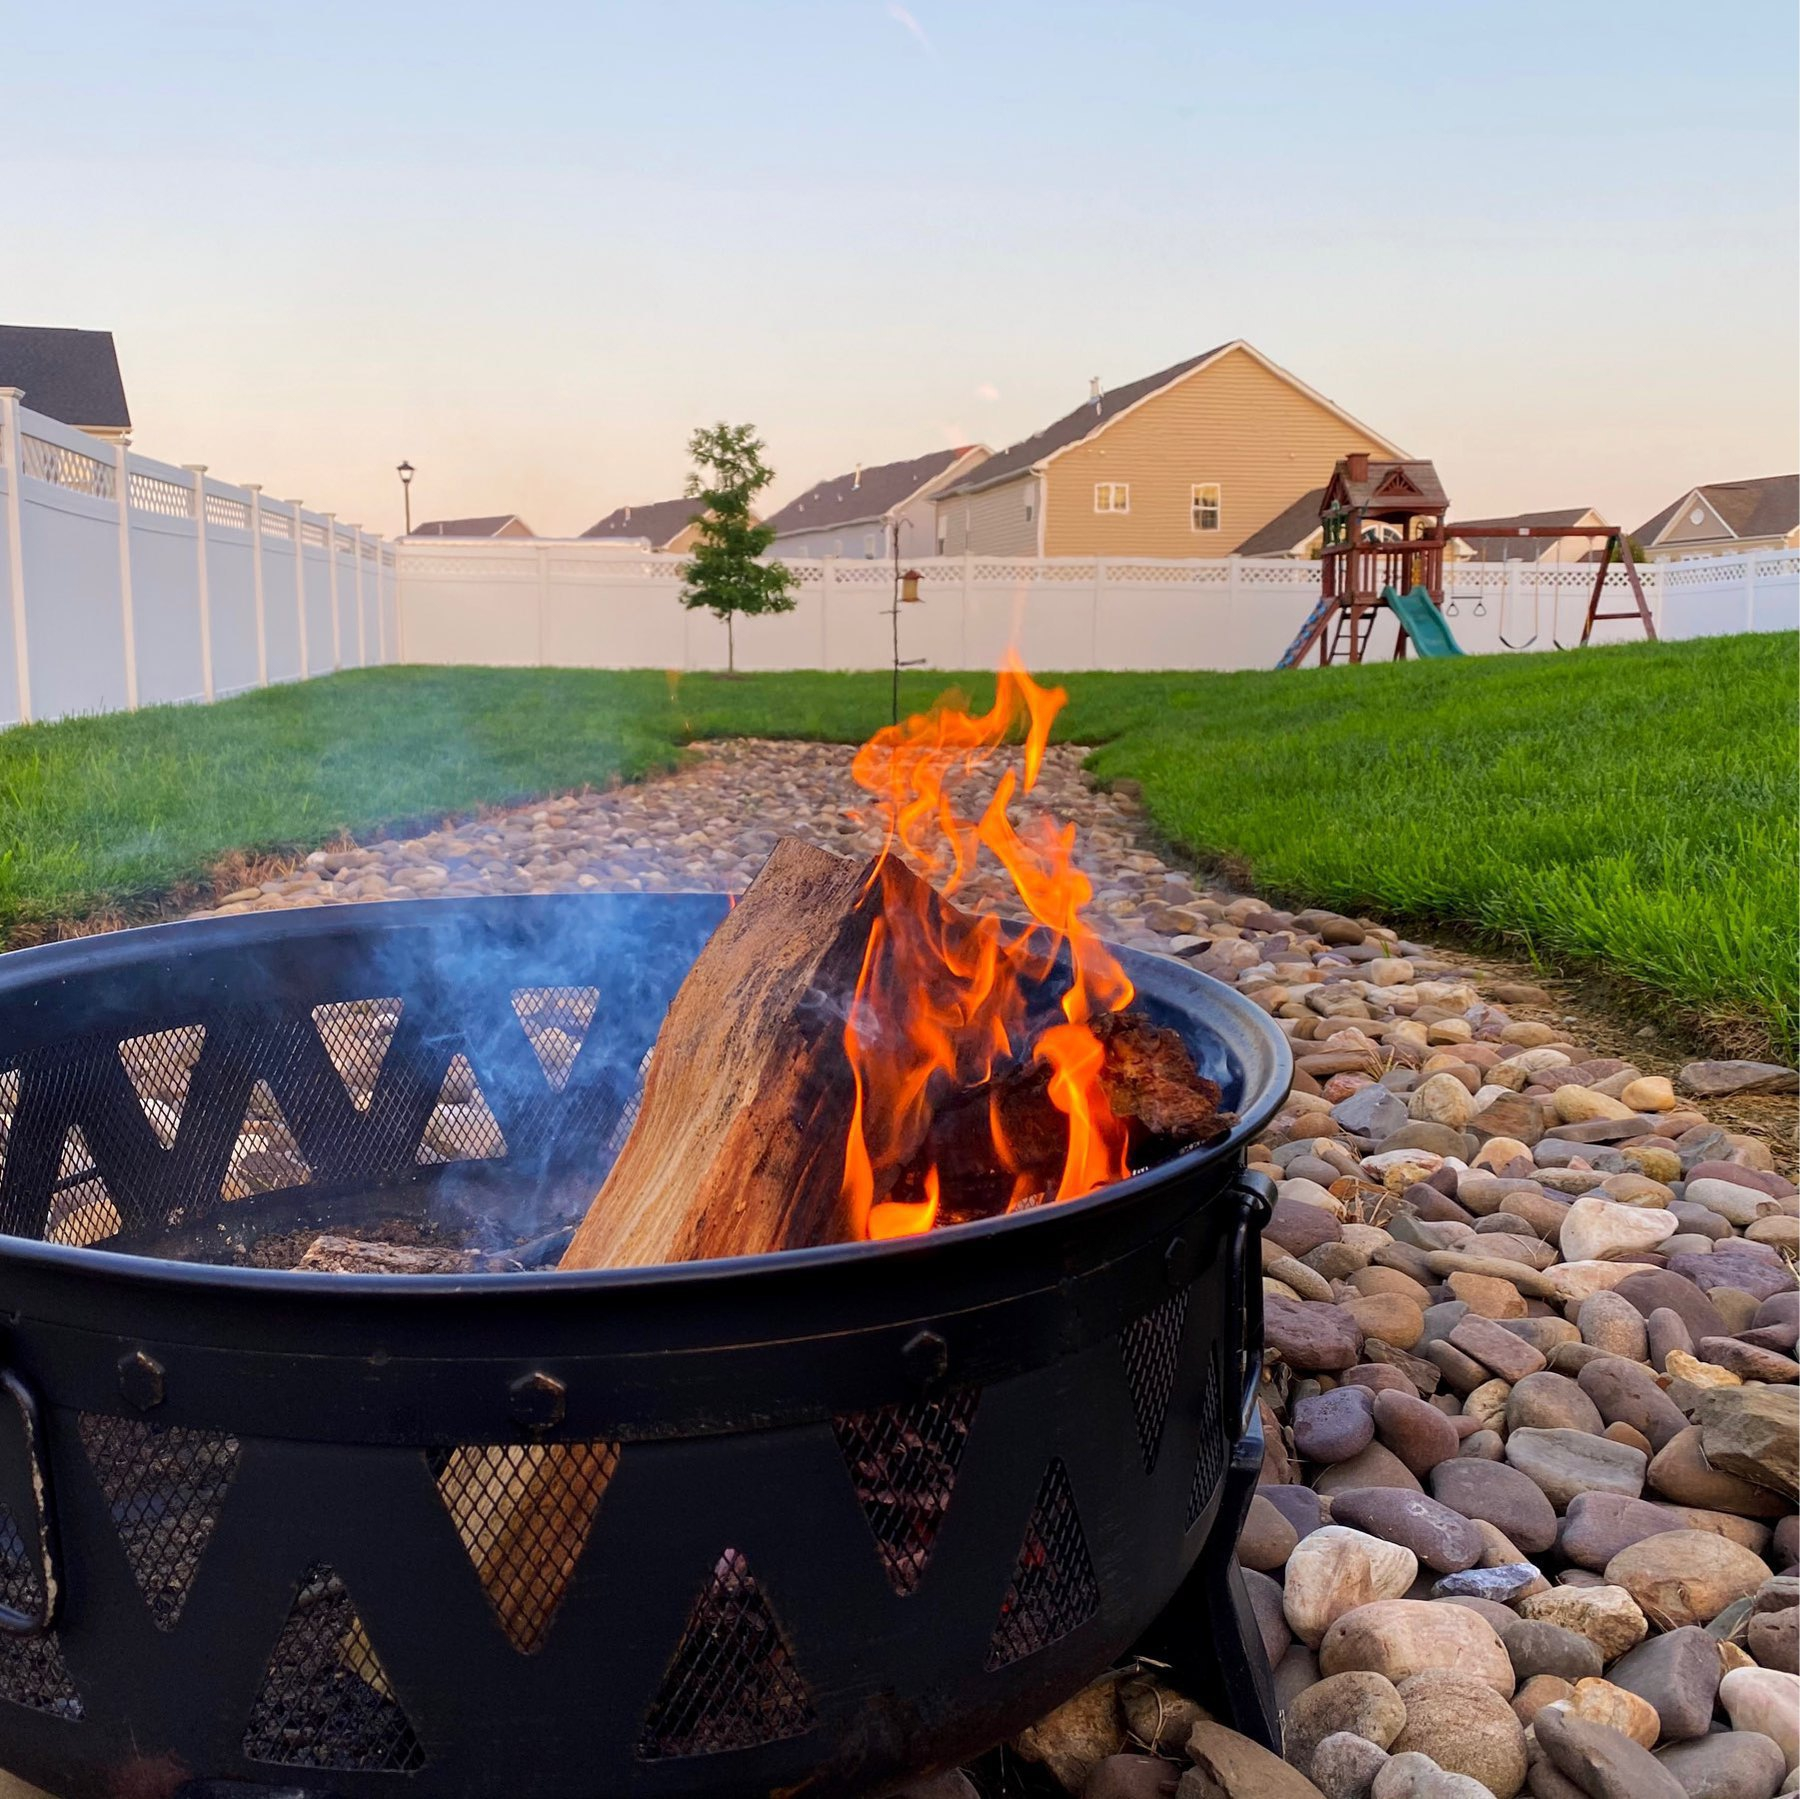 burning wood in a fire pit on stones